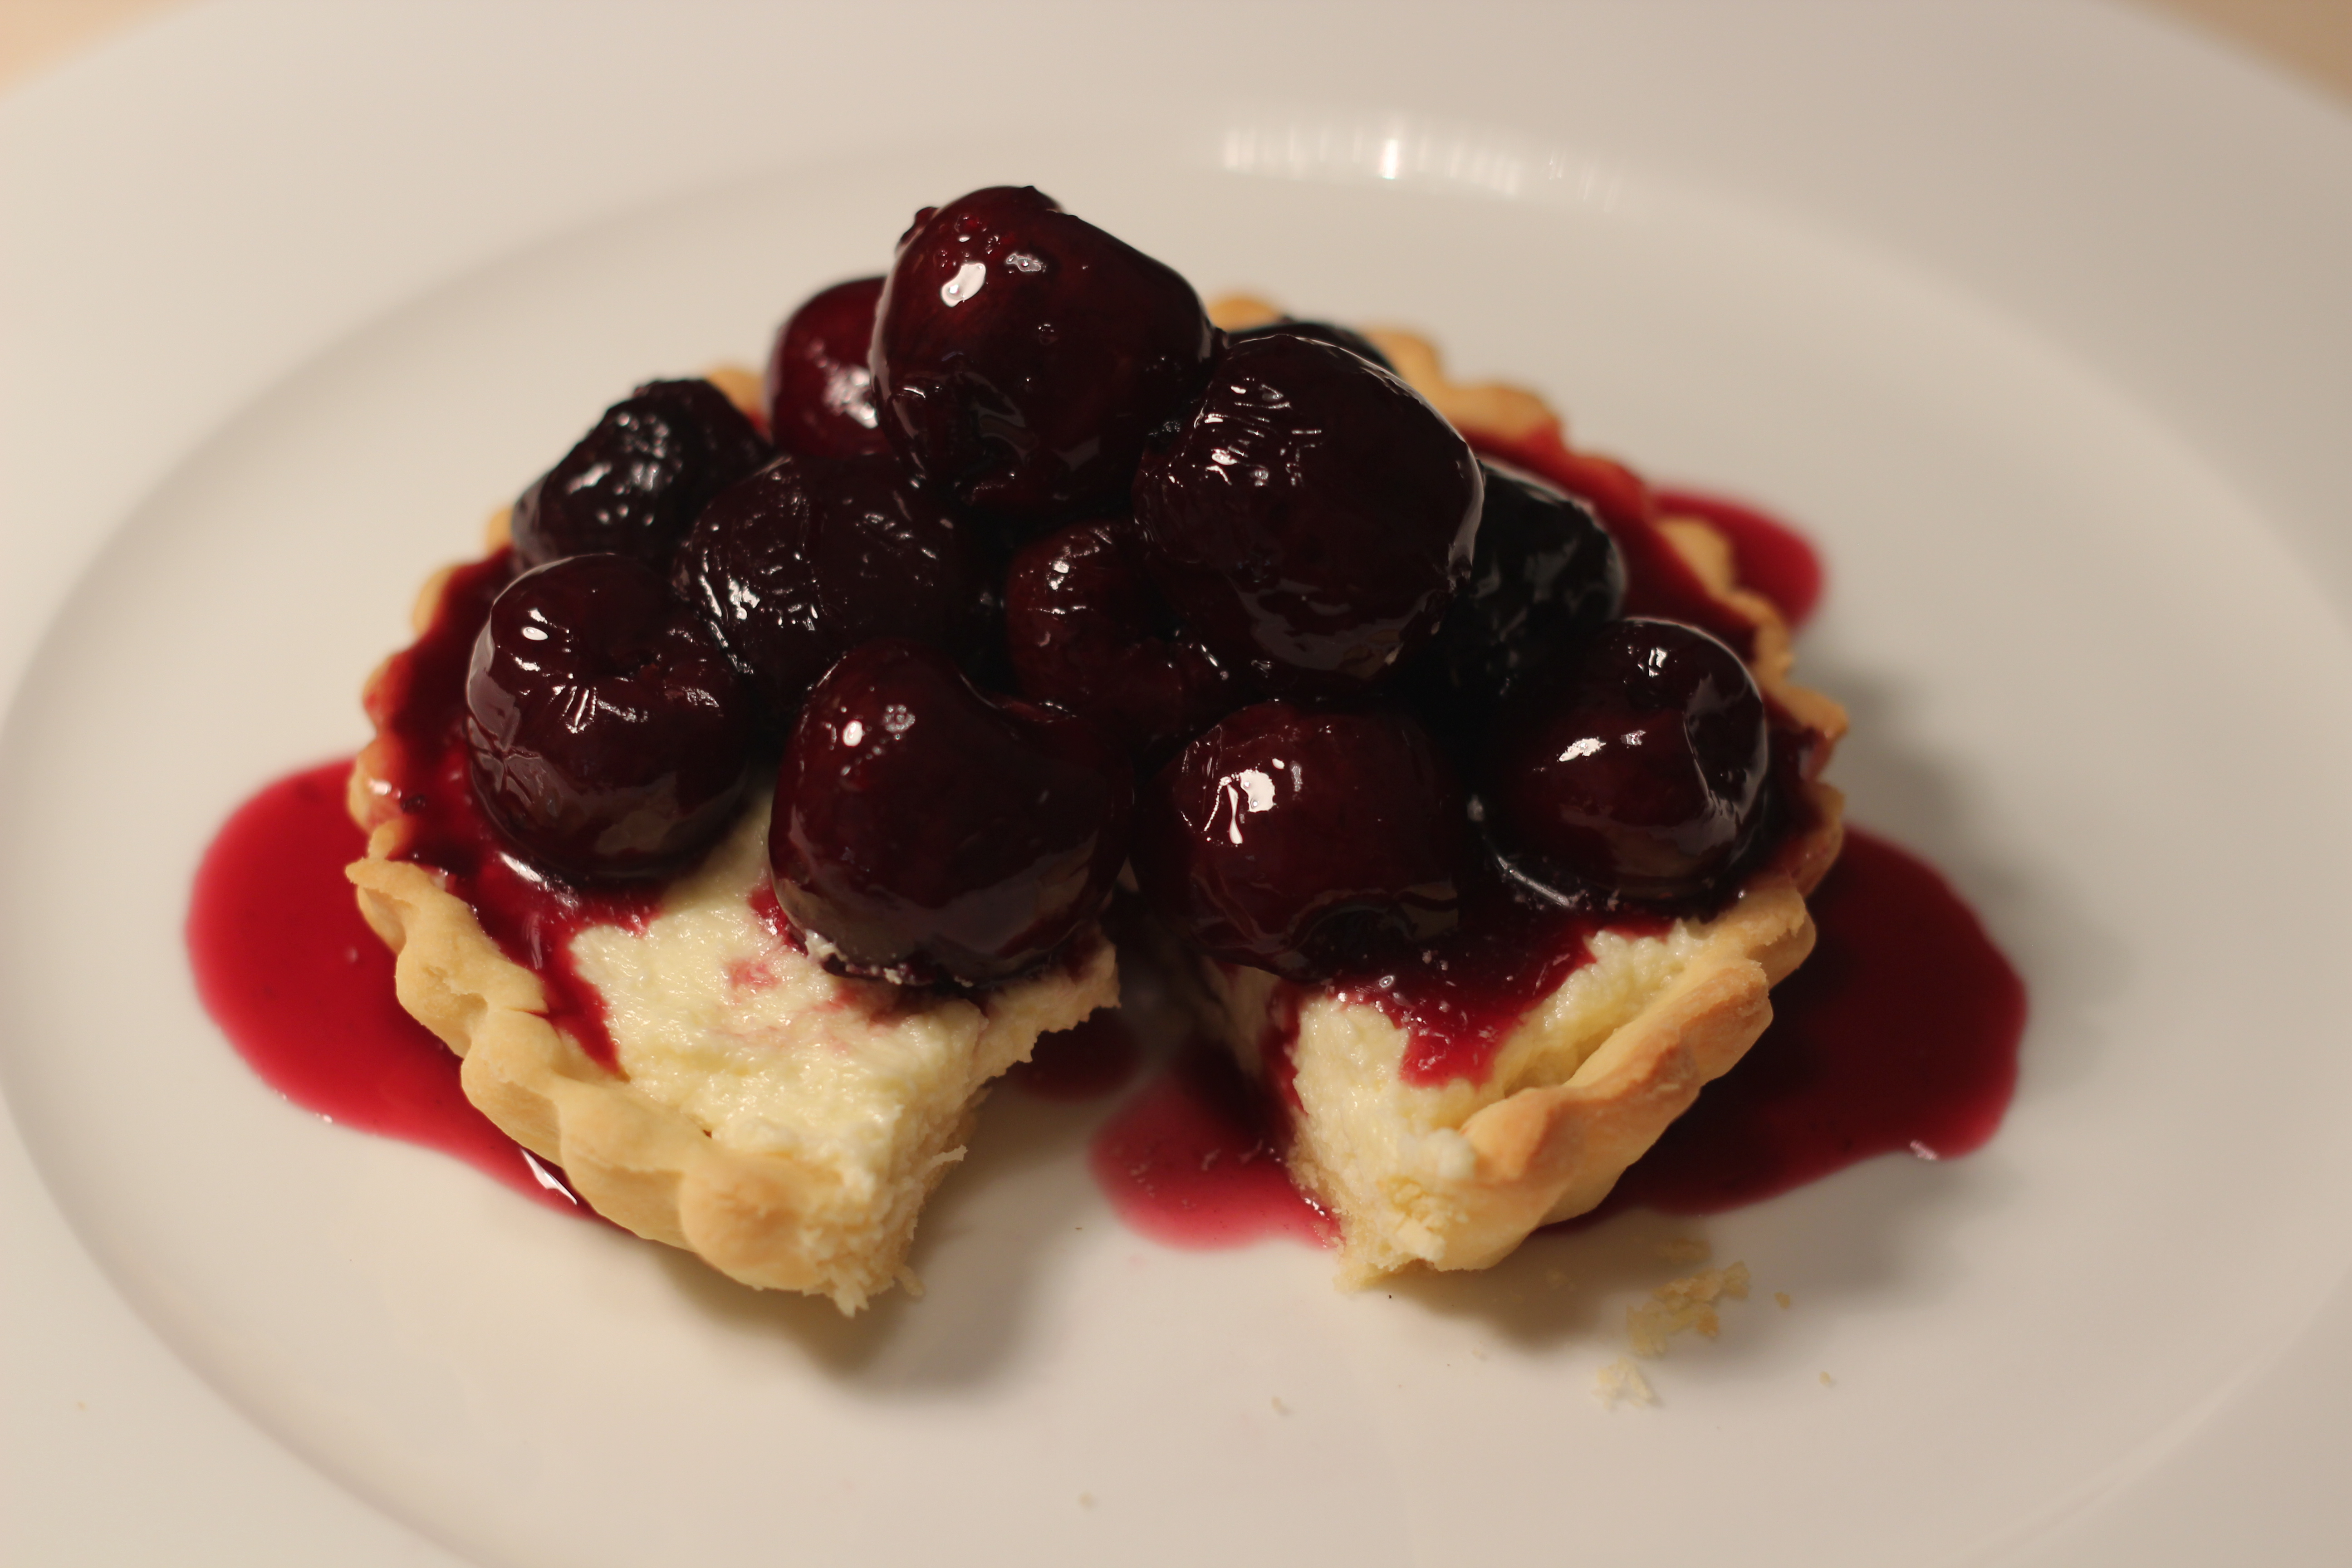 ... 5184 × 3456 in White Chocolate Tart with Cherries in Red Wine Sauce